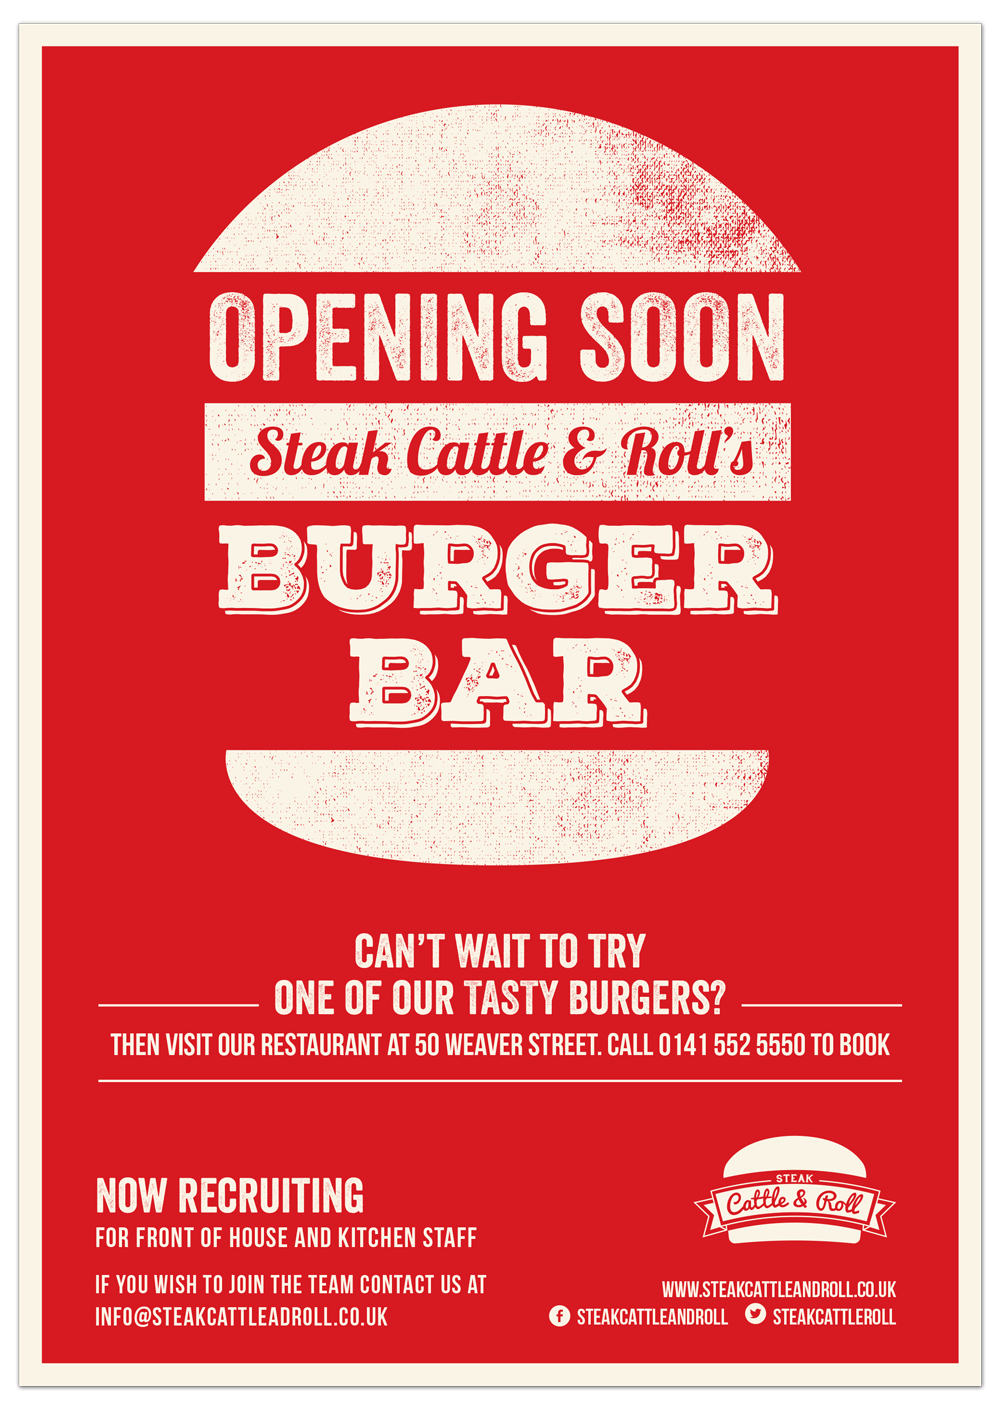 Steak, Cattle & Roll scr poster